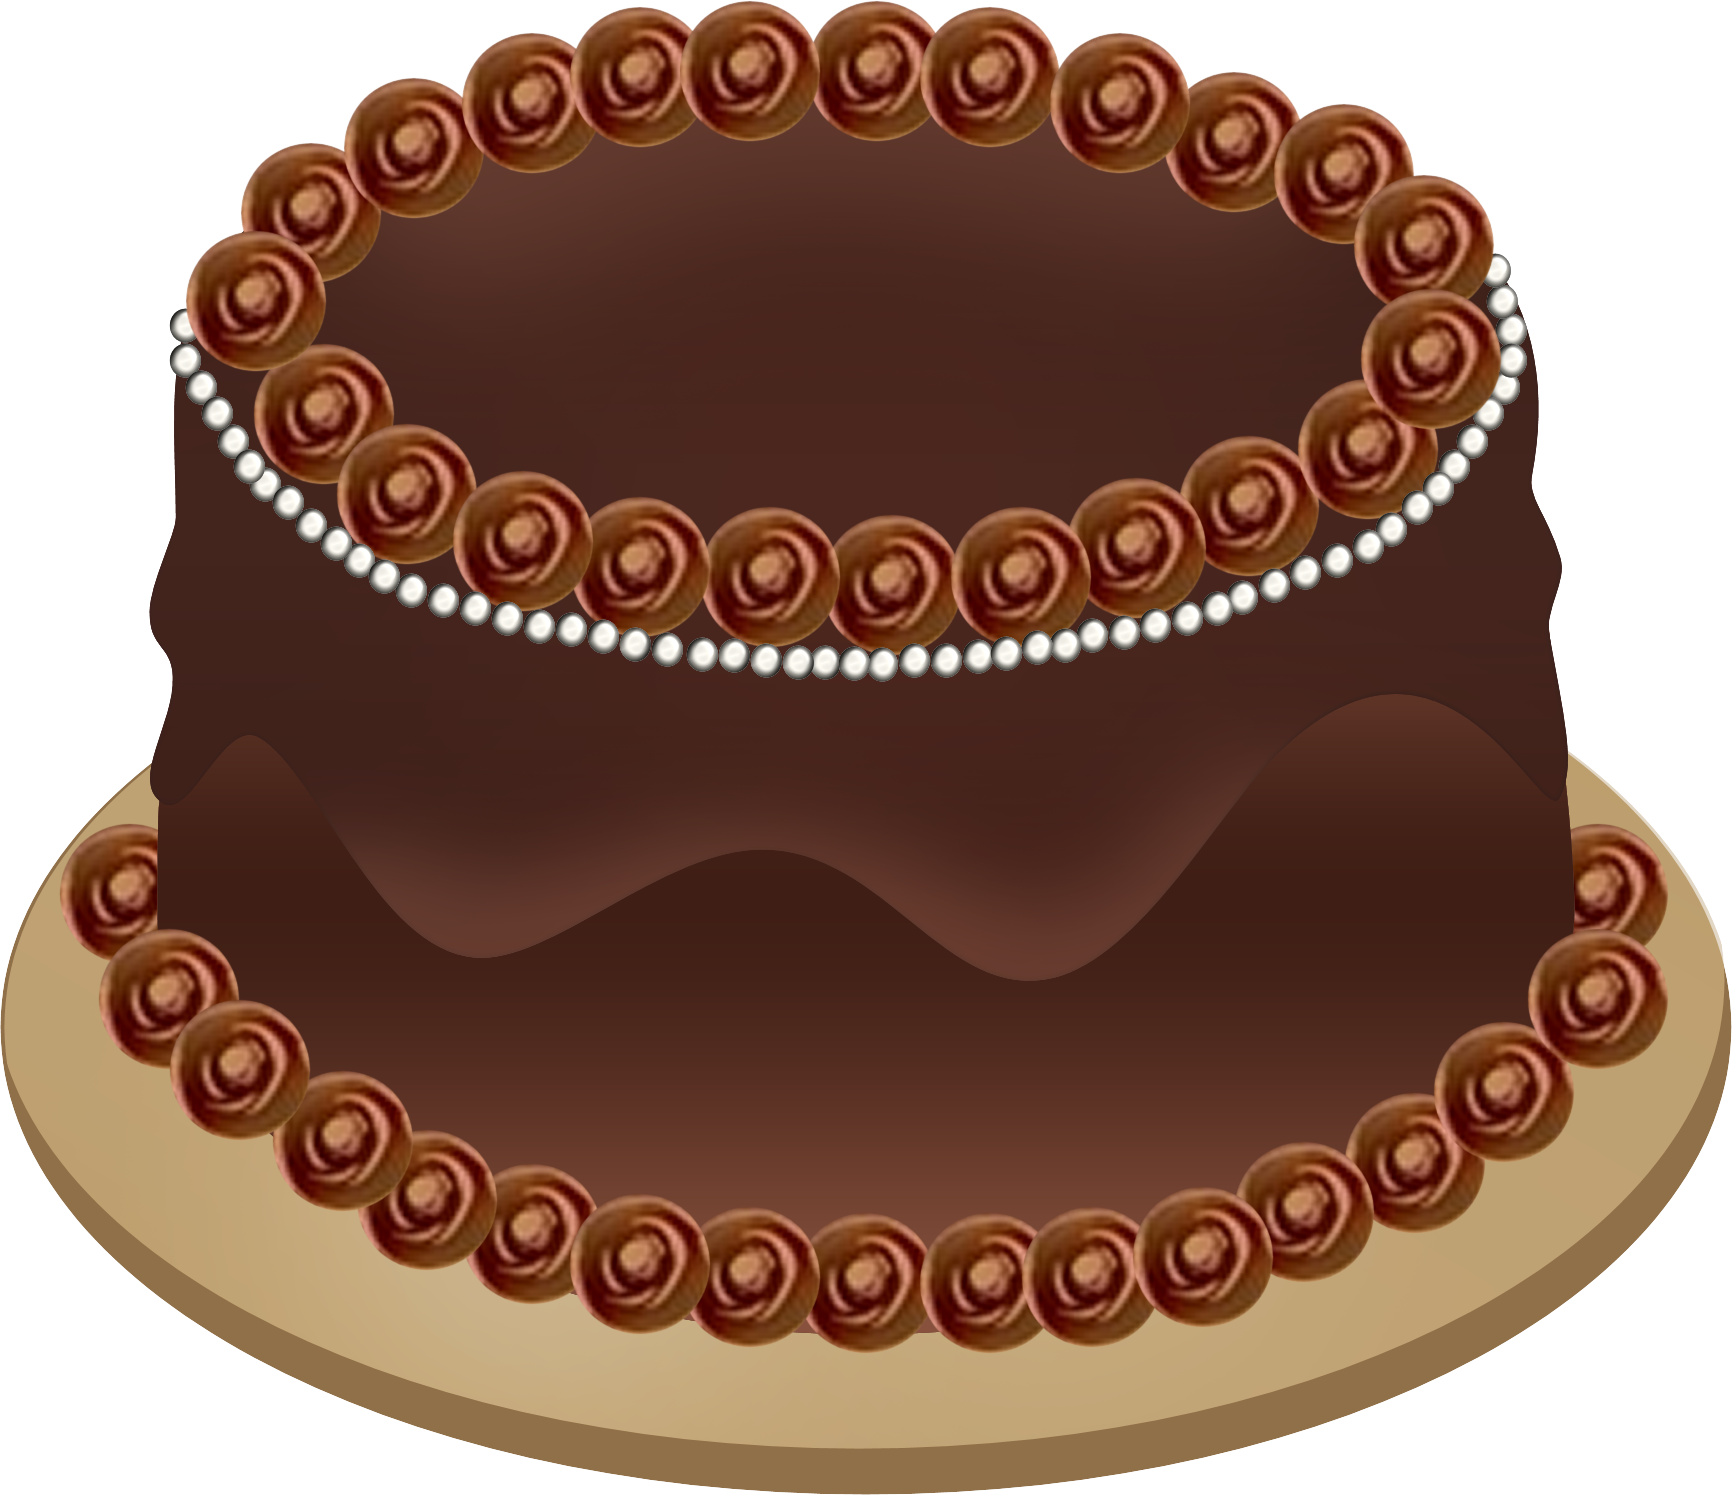 Desserts clipart candy. Cake png buscar con